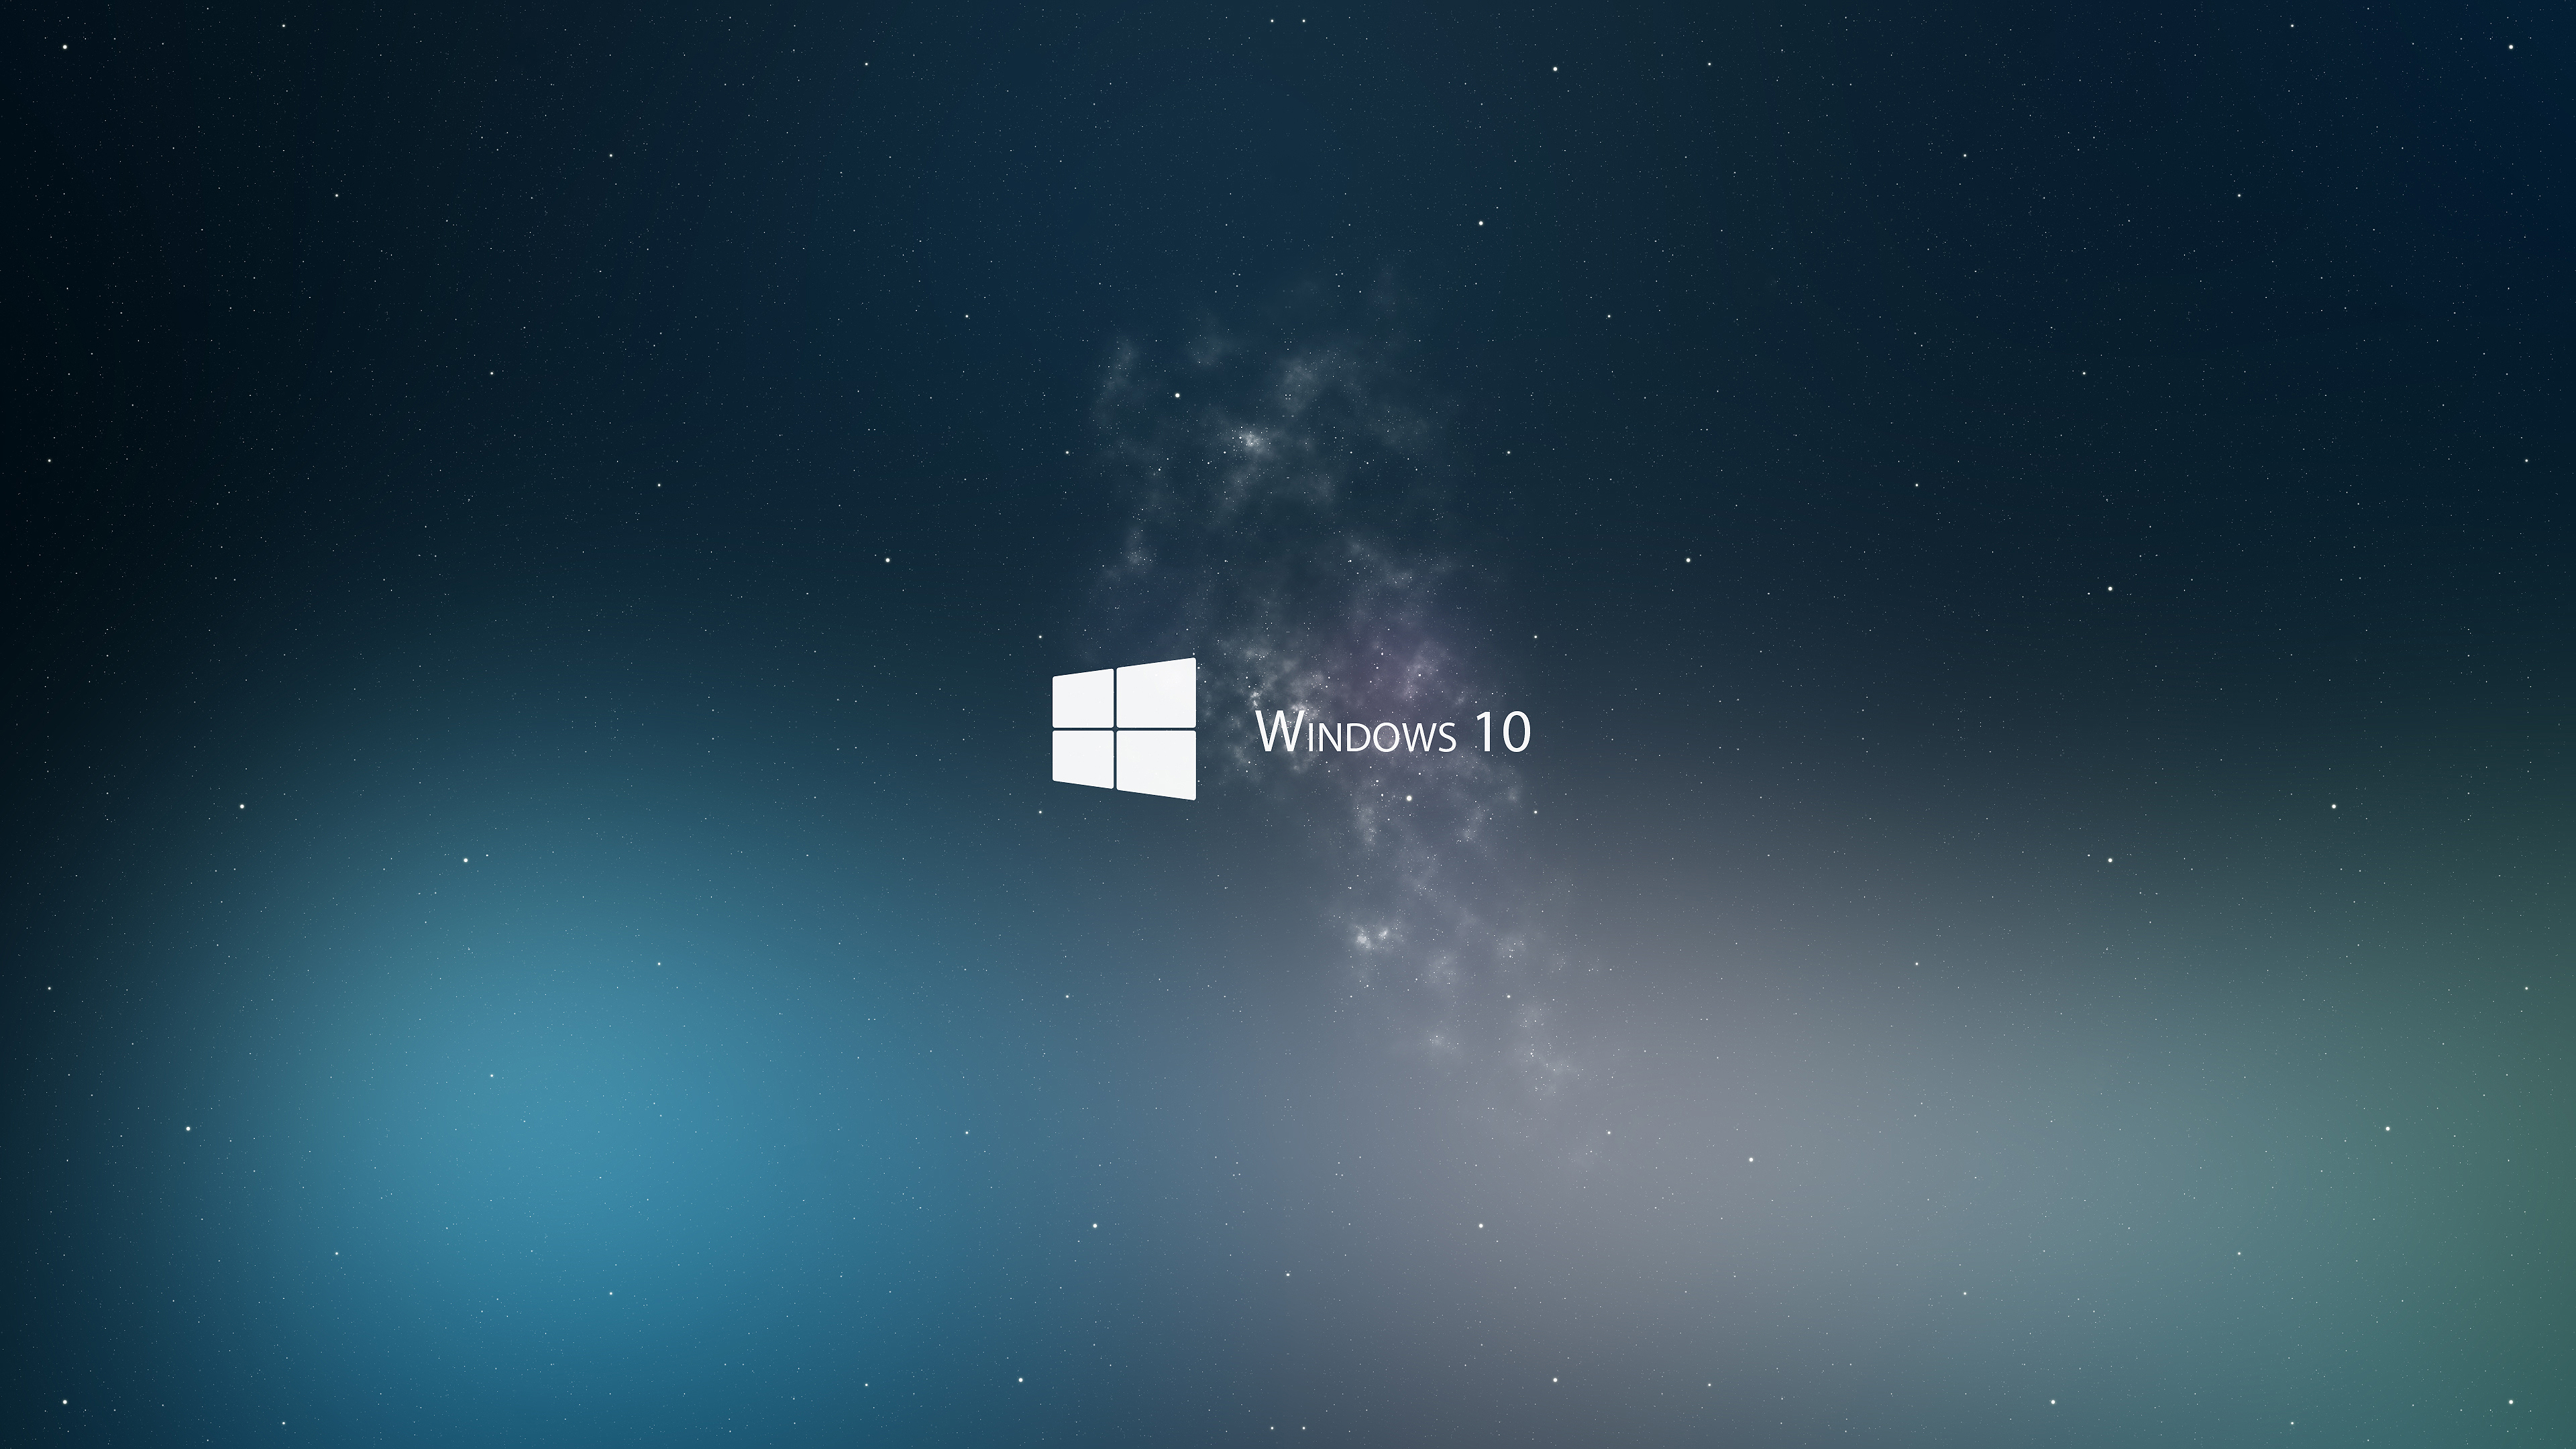 Windows 10 Wallpapers And Themes